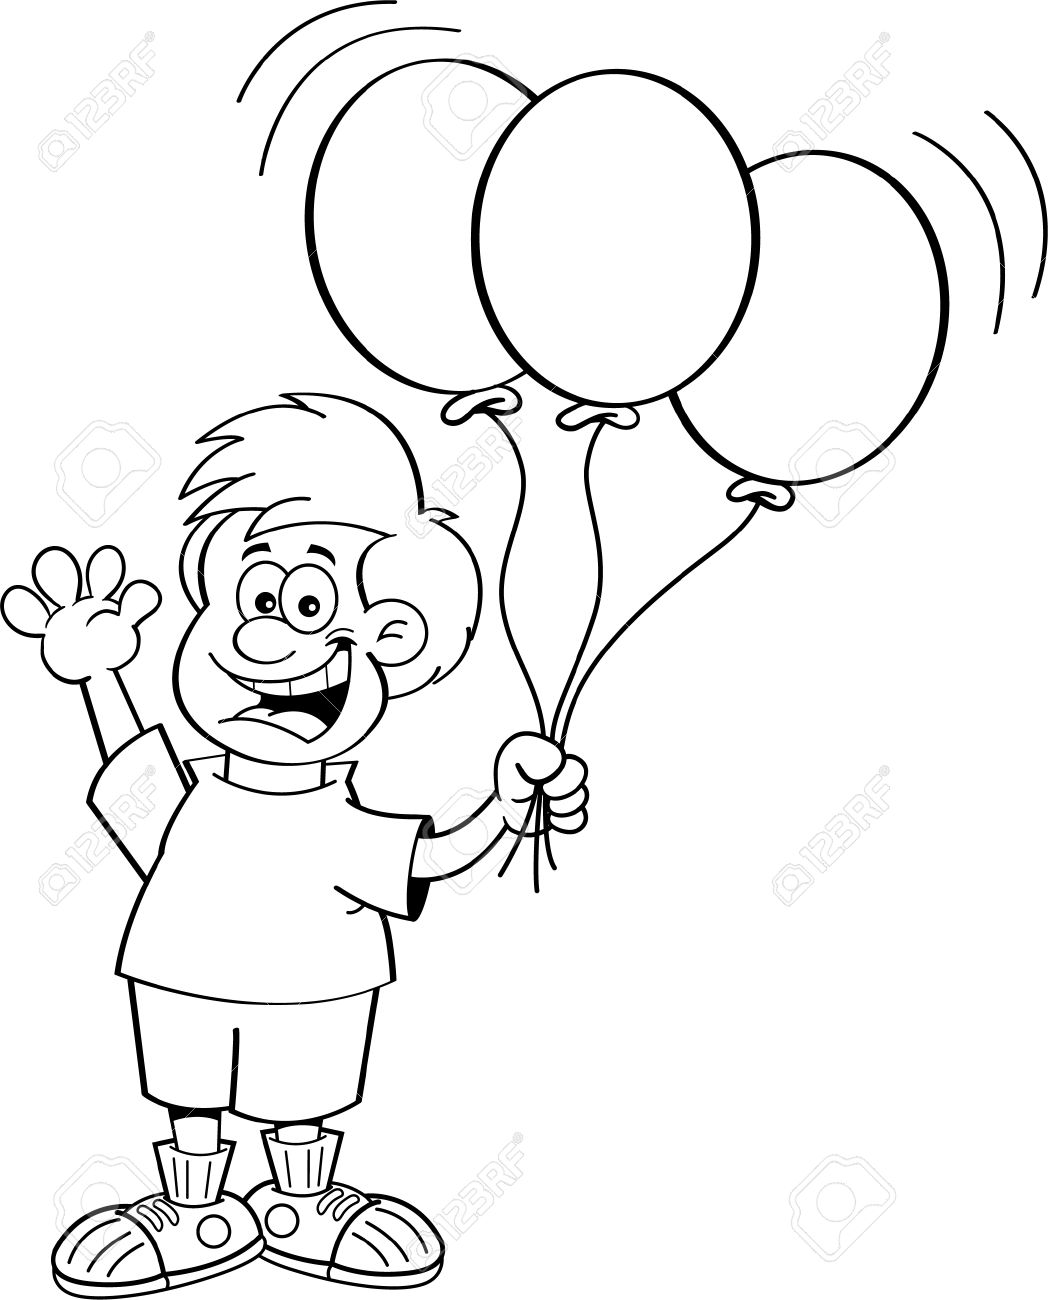 Black And White Illustration Of A Boy Holding Balloons Royalty Free